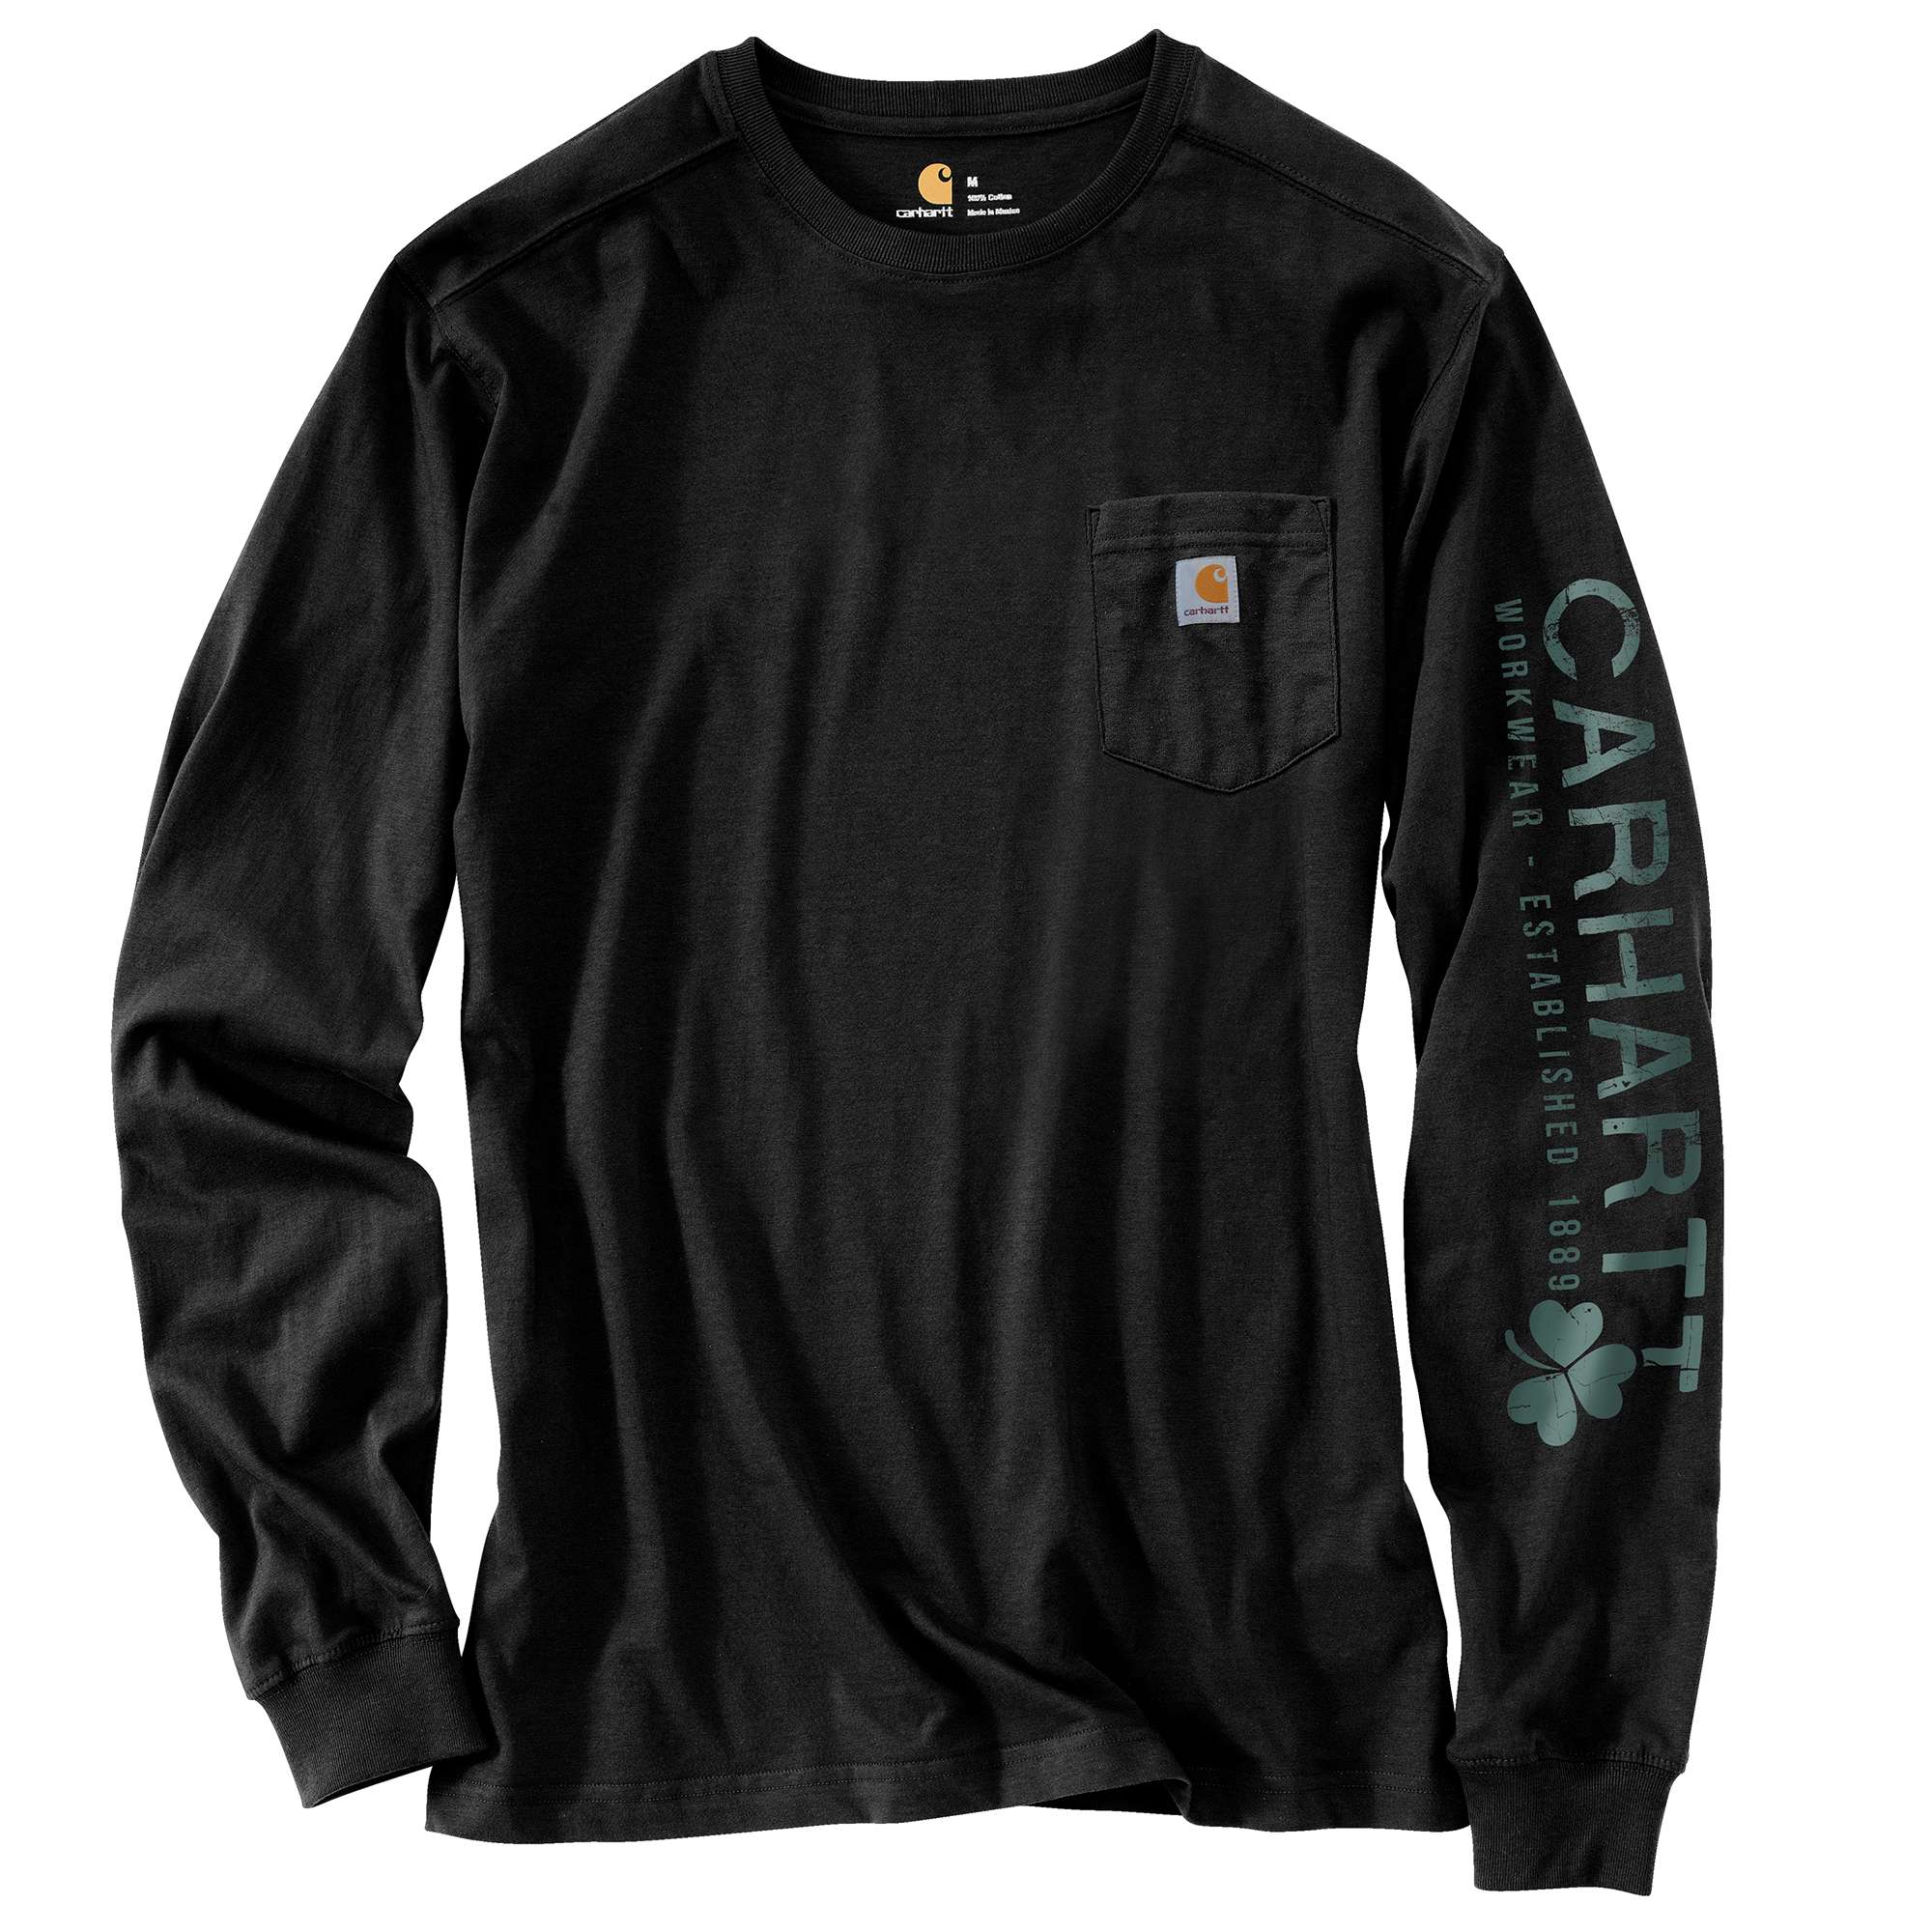 MEN'S MADDOCK ST. PATRICK'S DAY LONG-SLEEVE T-SHIRT